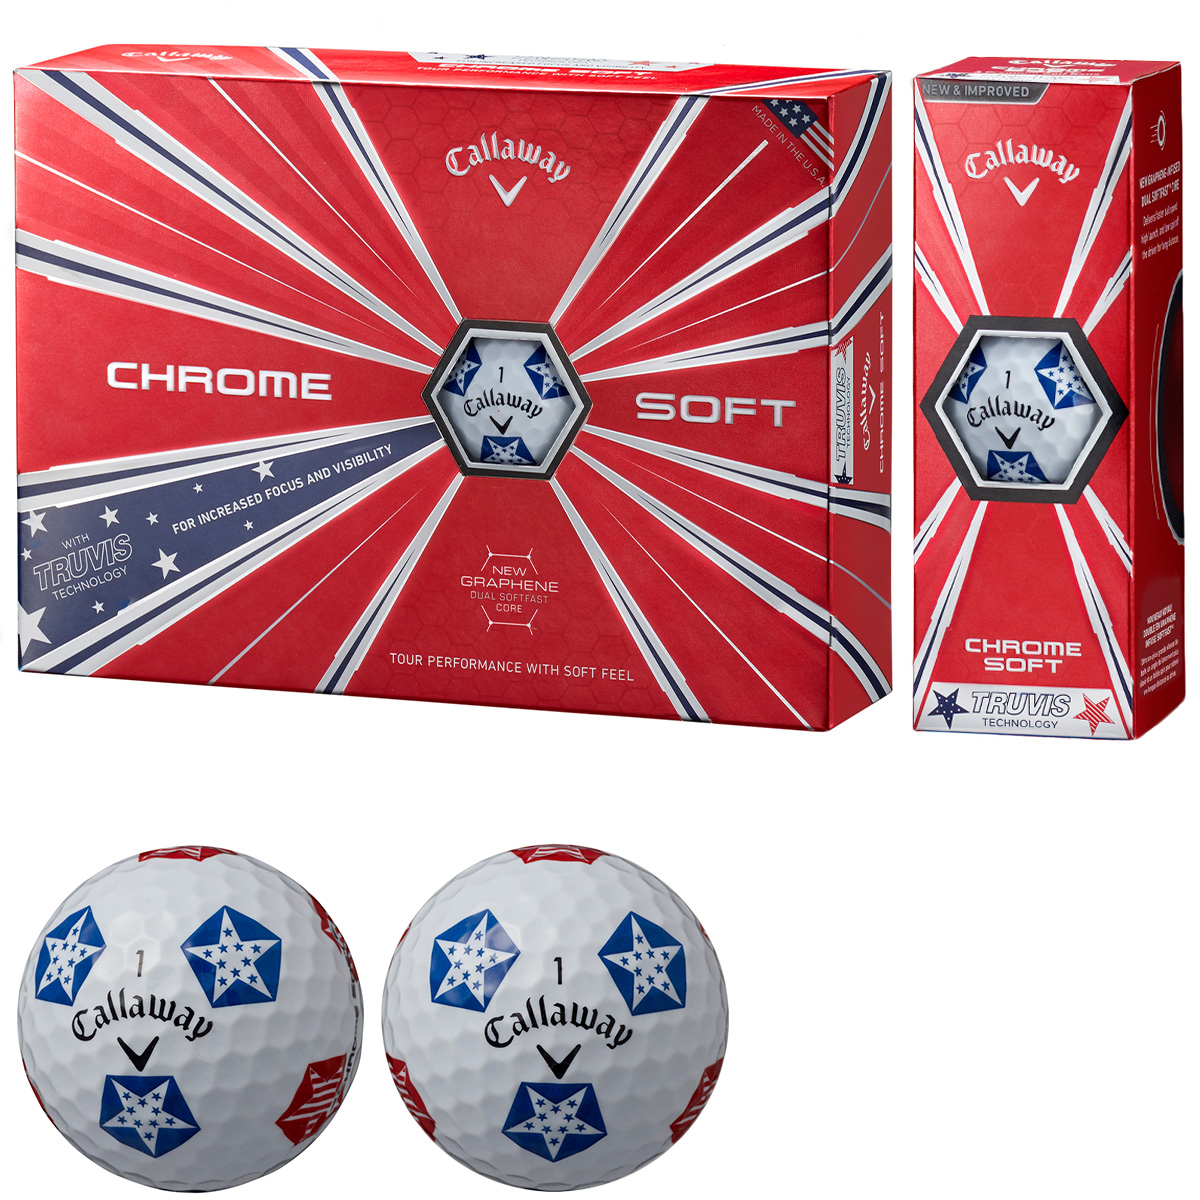 CHROME SOFT TRUVIS STARS/STRIPES ボール